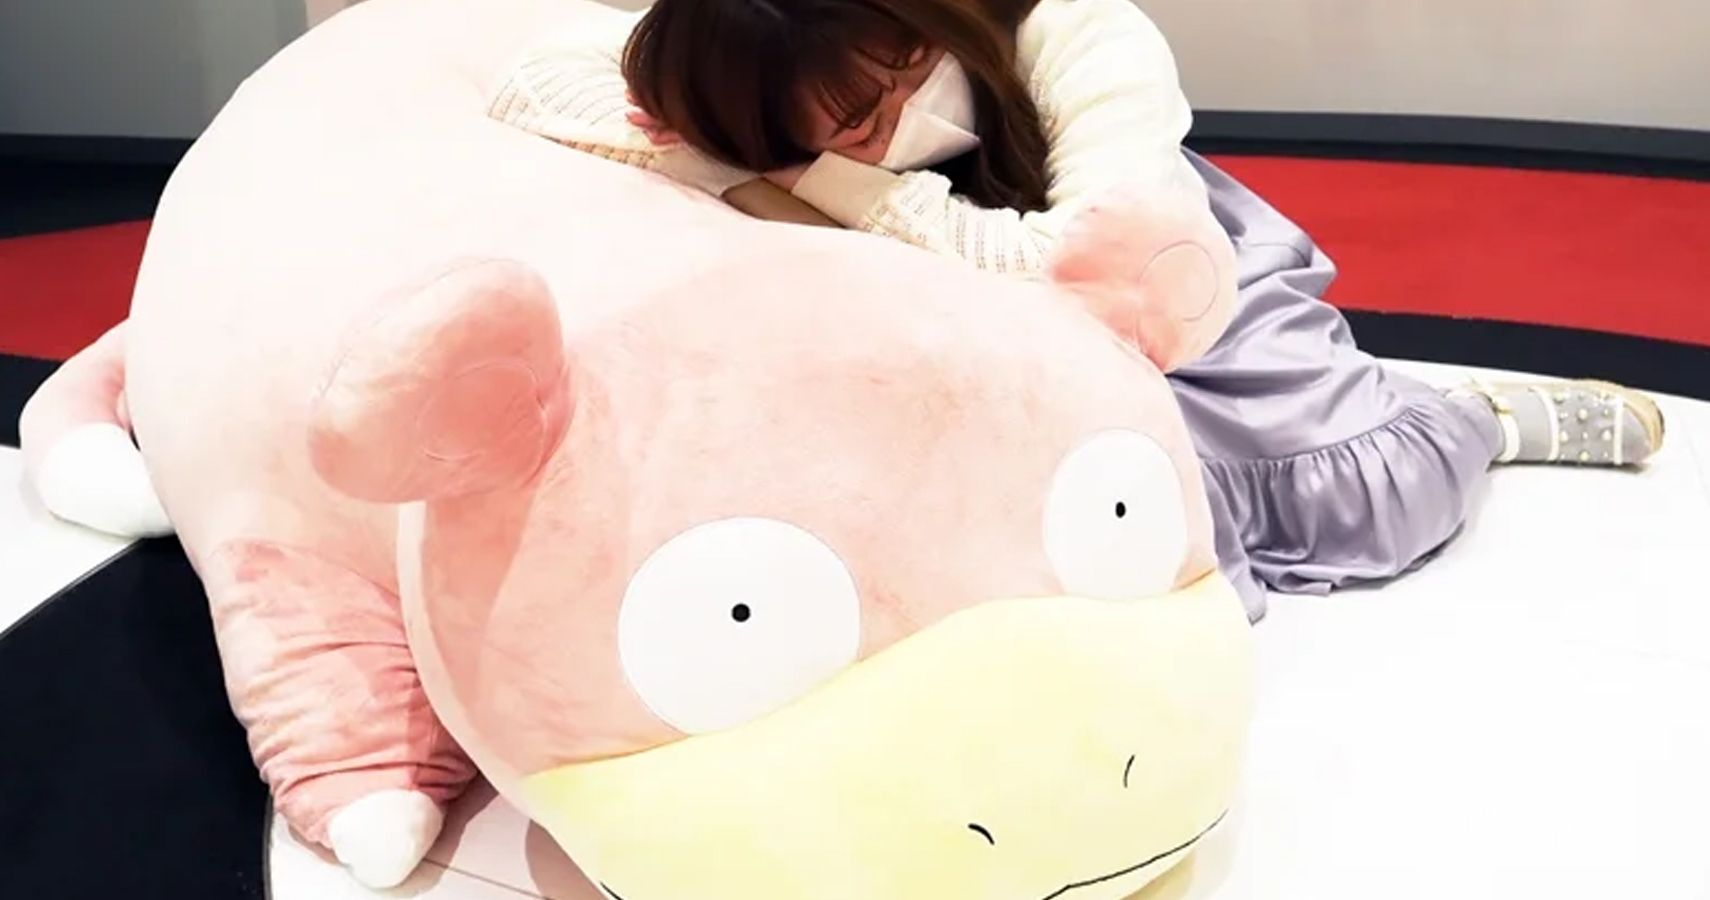 Life-Size Slowpoke Pokémon Plushie Available For Pre-Order For $450